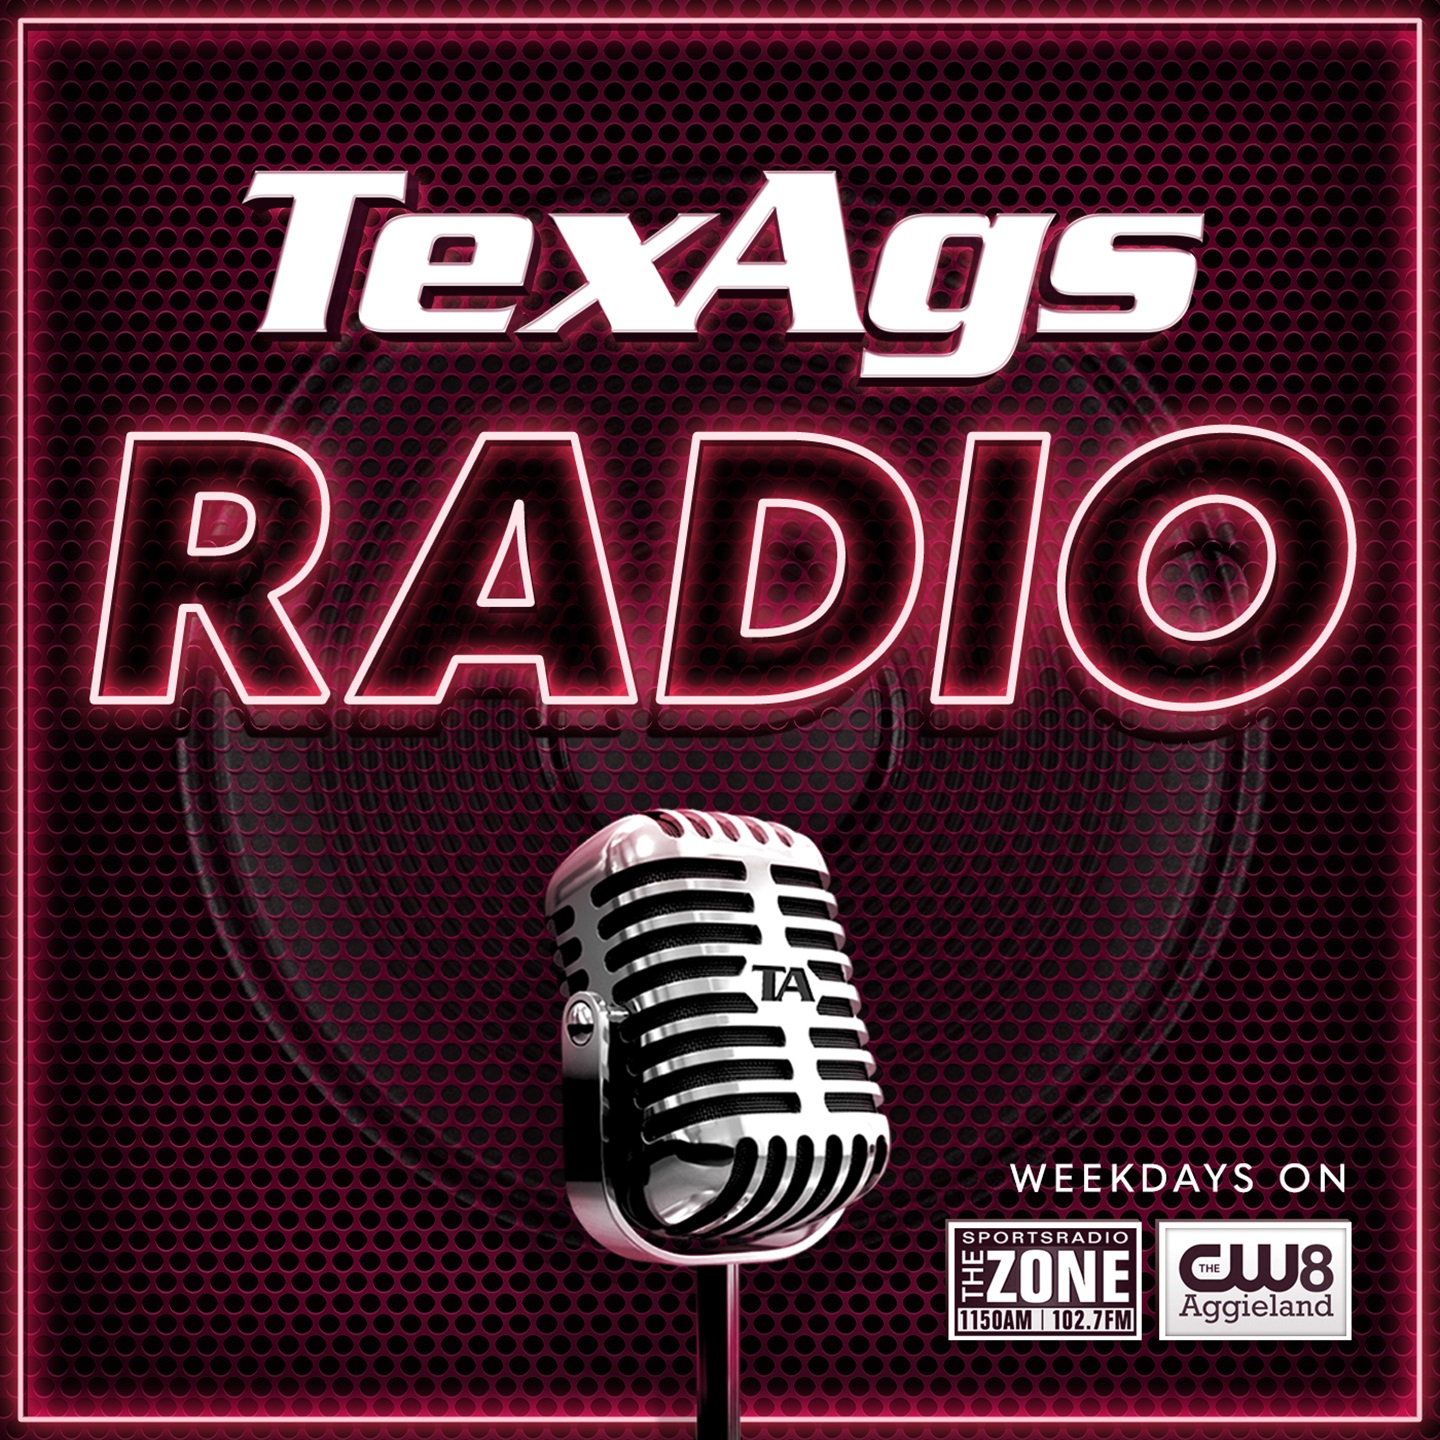 TexAgs Radio: Wednesday (9/4) full show